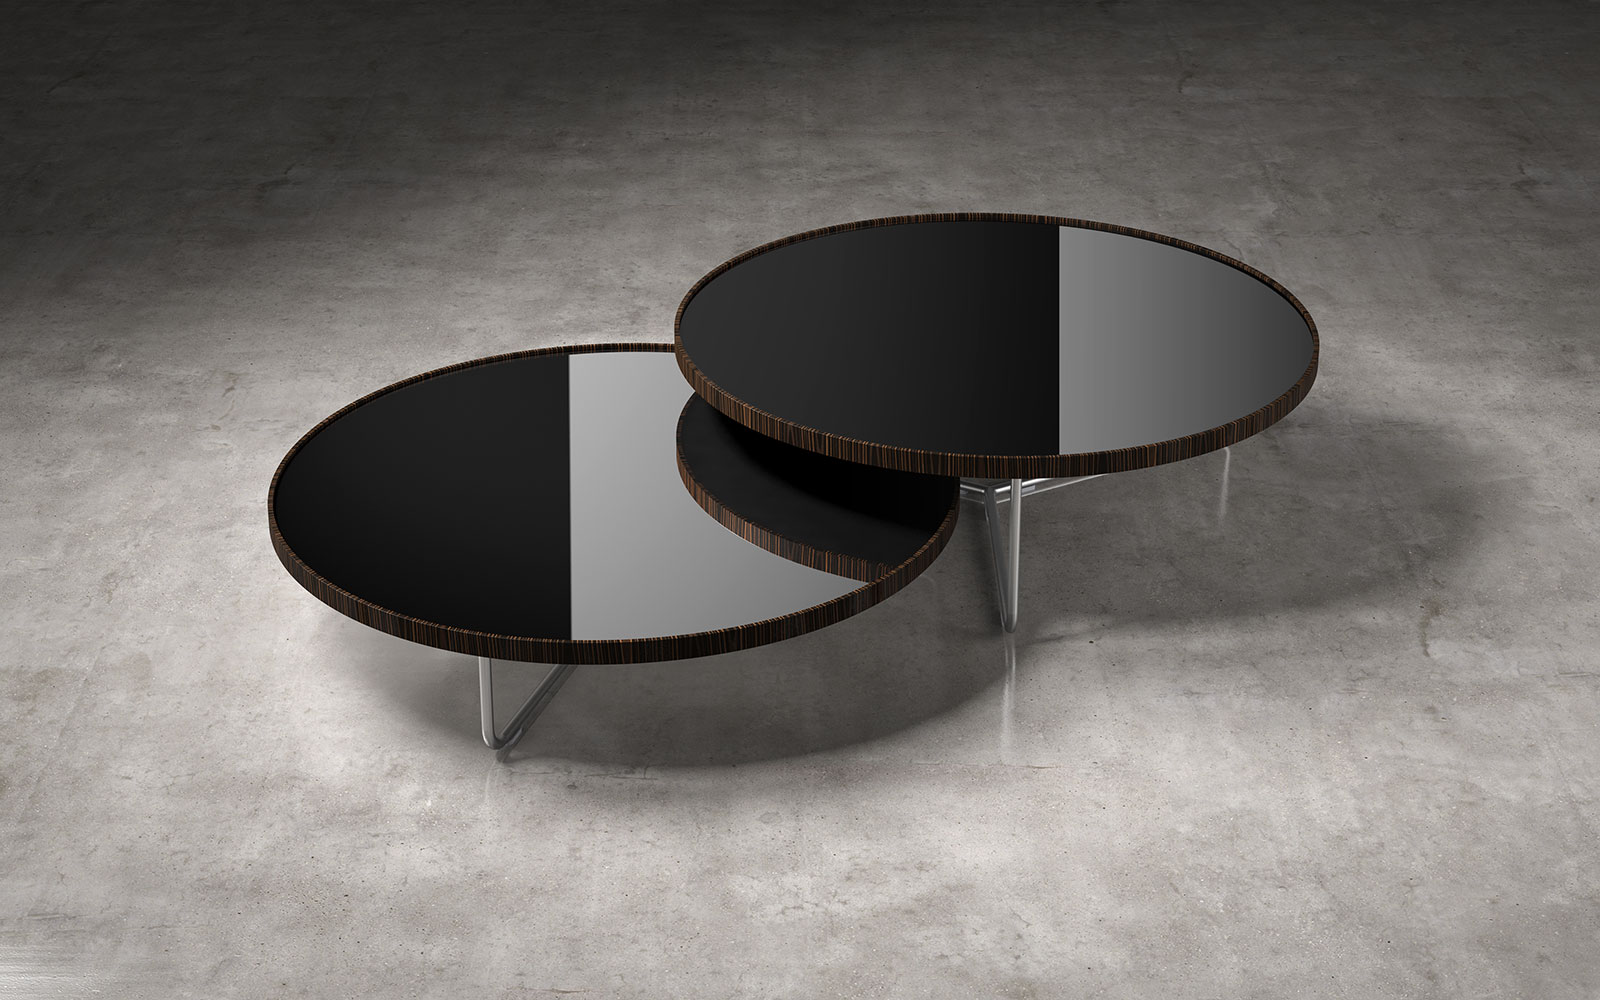 Astonishing Adelphi Nesting Coffee Tables In Lacquer Kaza Modern Furniture Caraccident5 Cool Chair Designs And Ideas Caraccident5Info